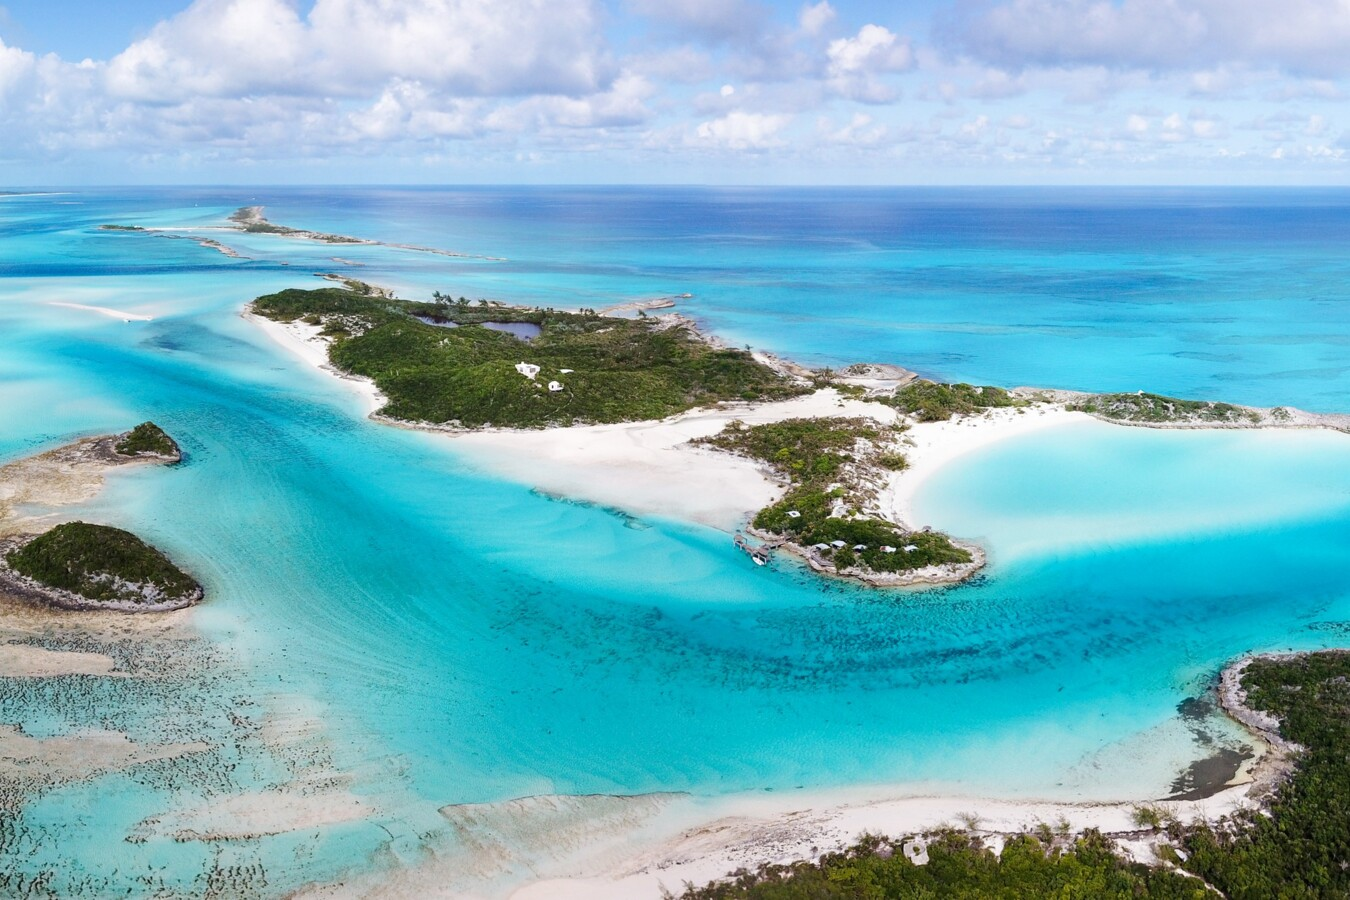 Exuma Cays Real Estate - Exuma Cays Homes for Sale